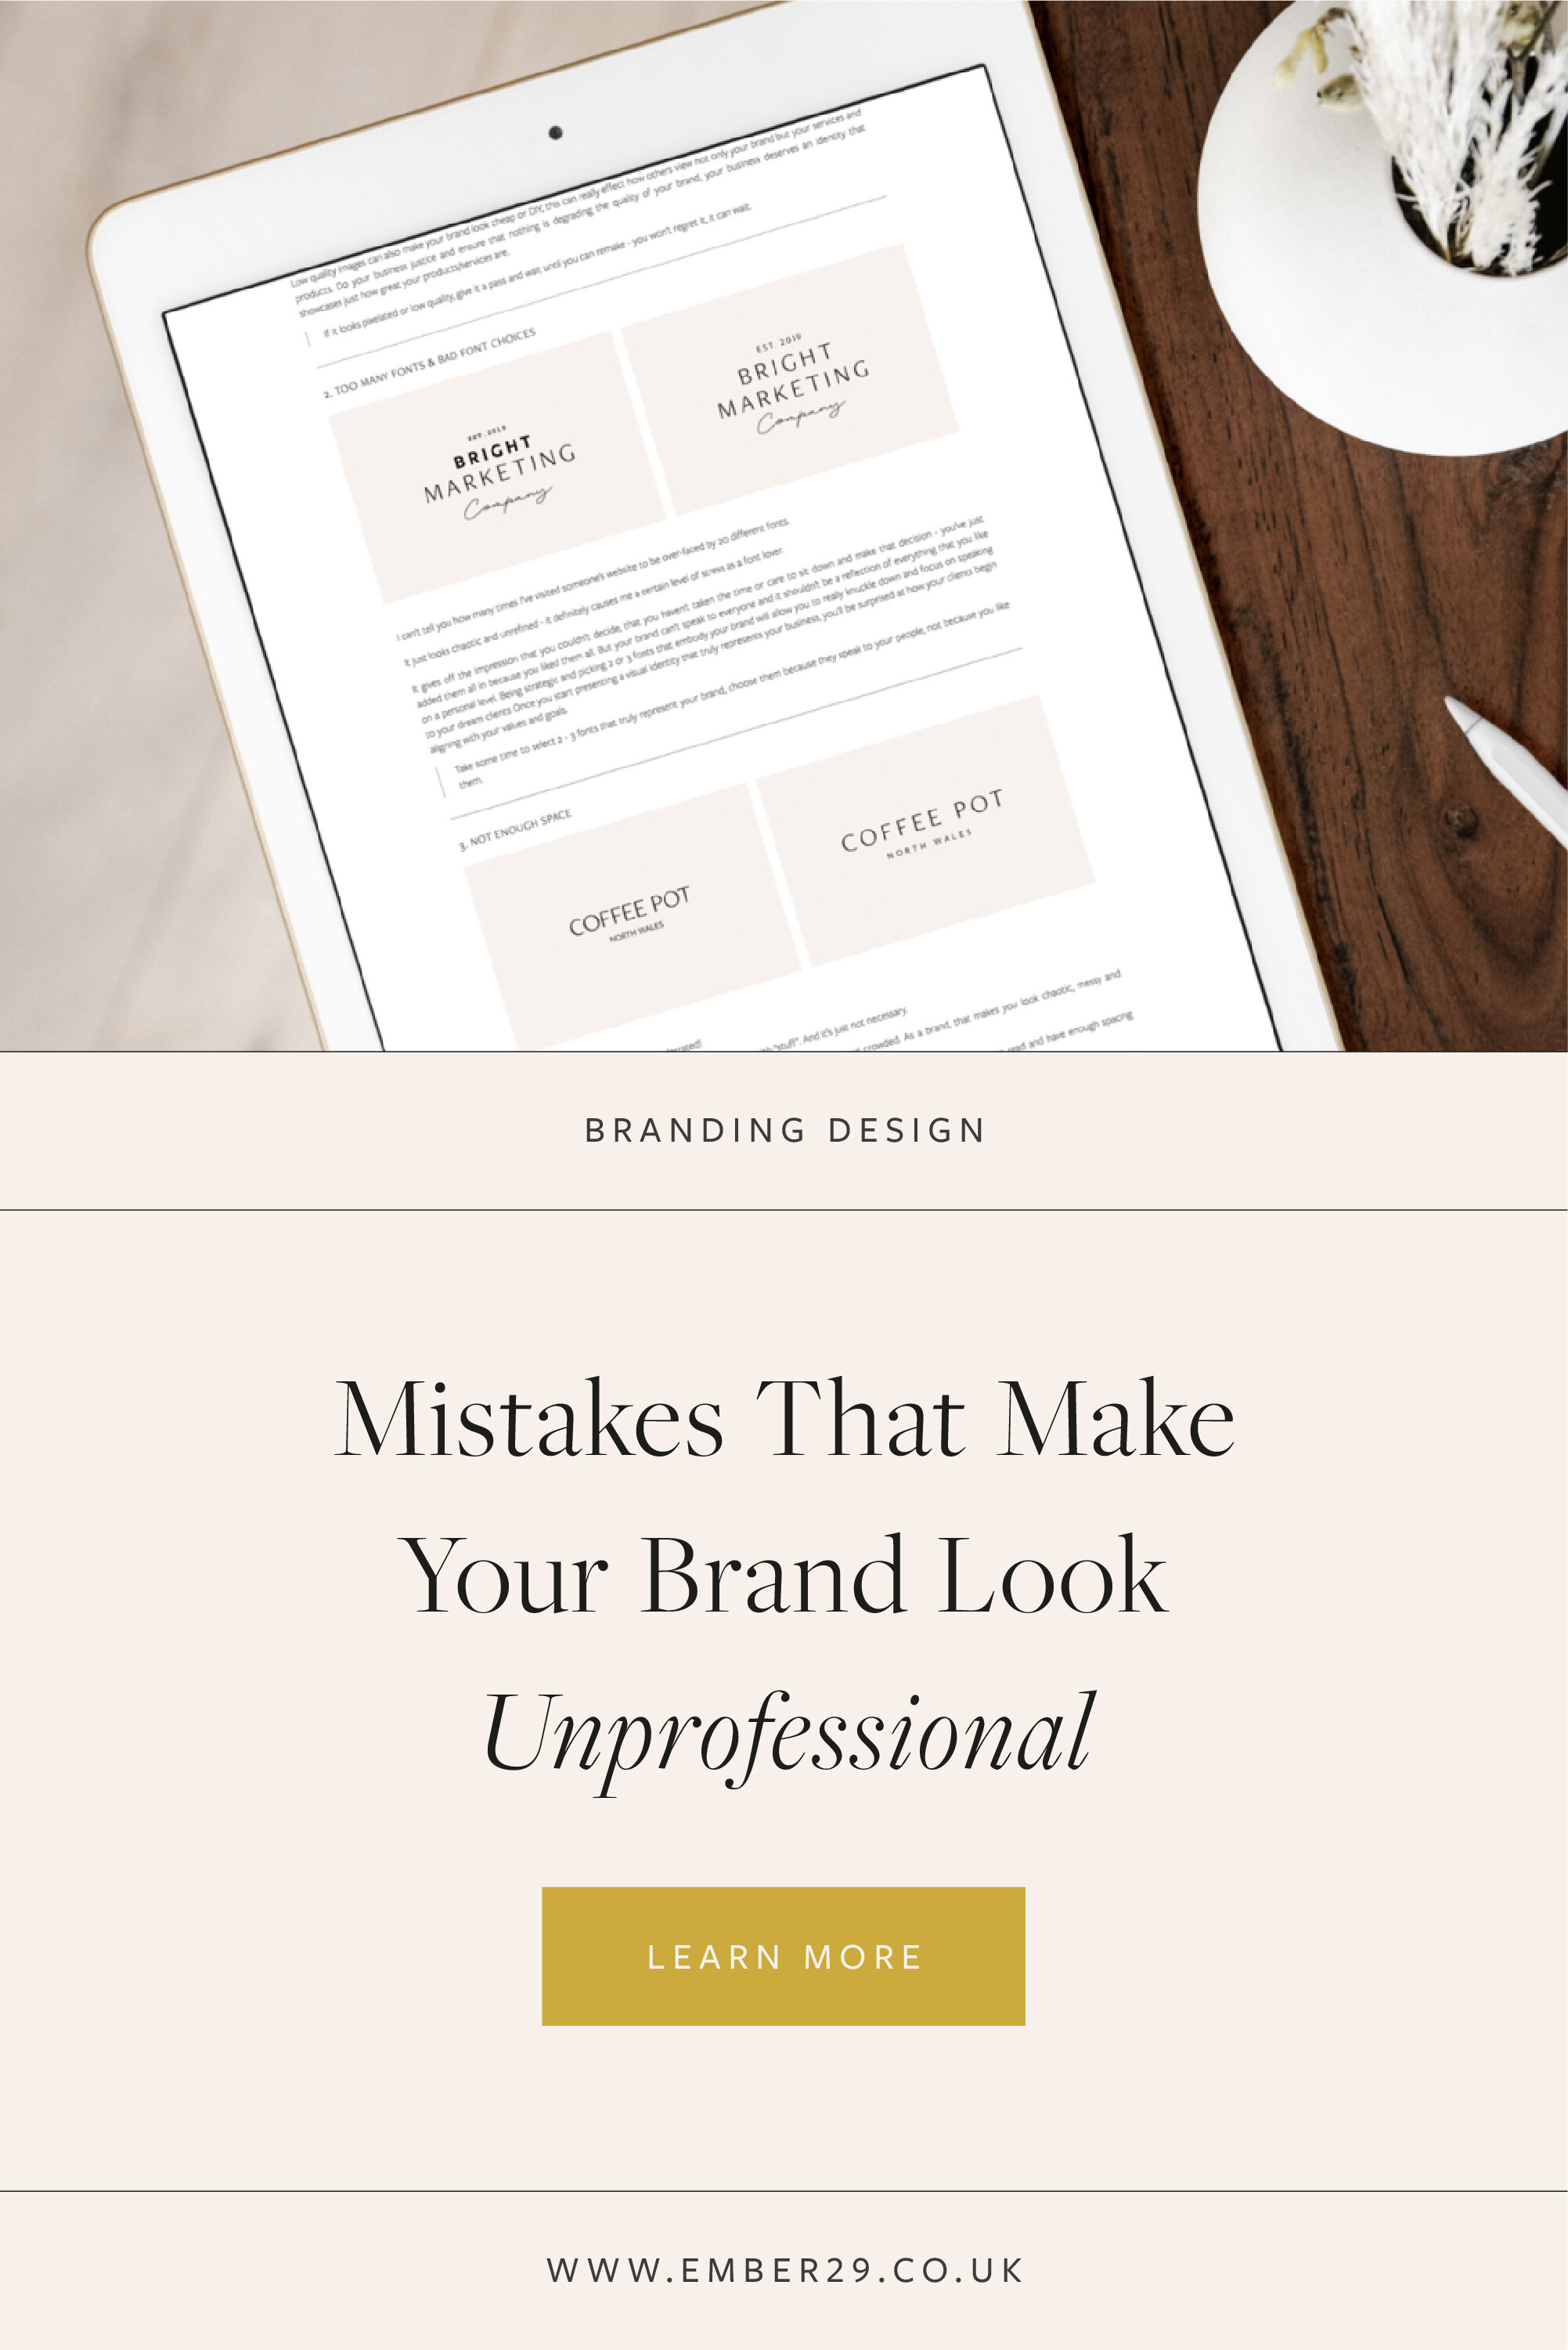 Mistakes That Make Your Brand Look Unprofessional